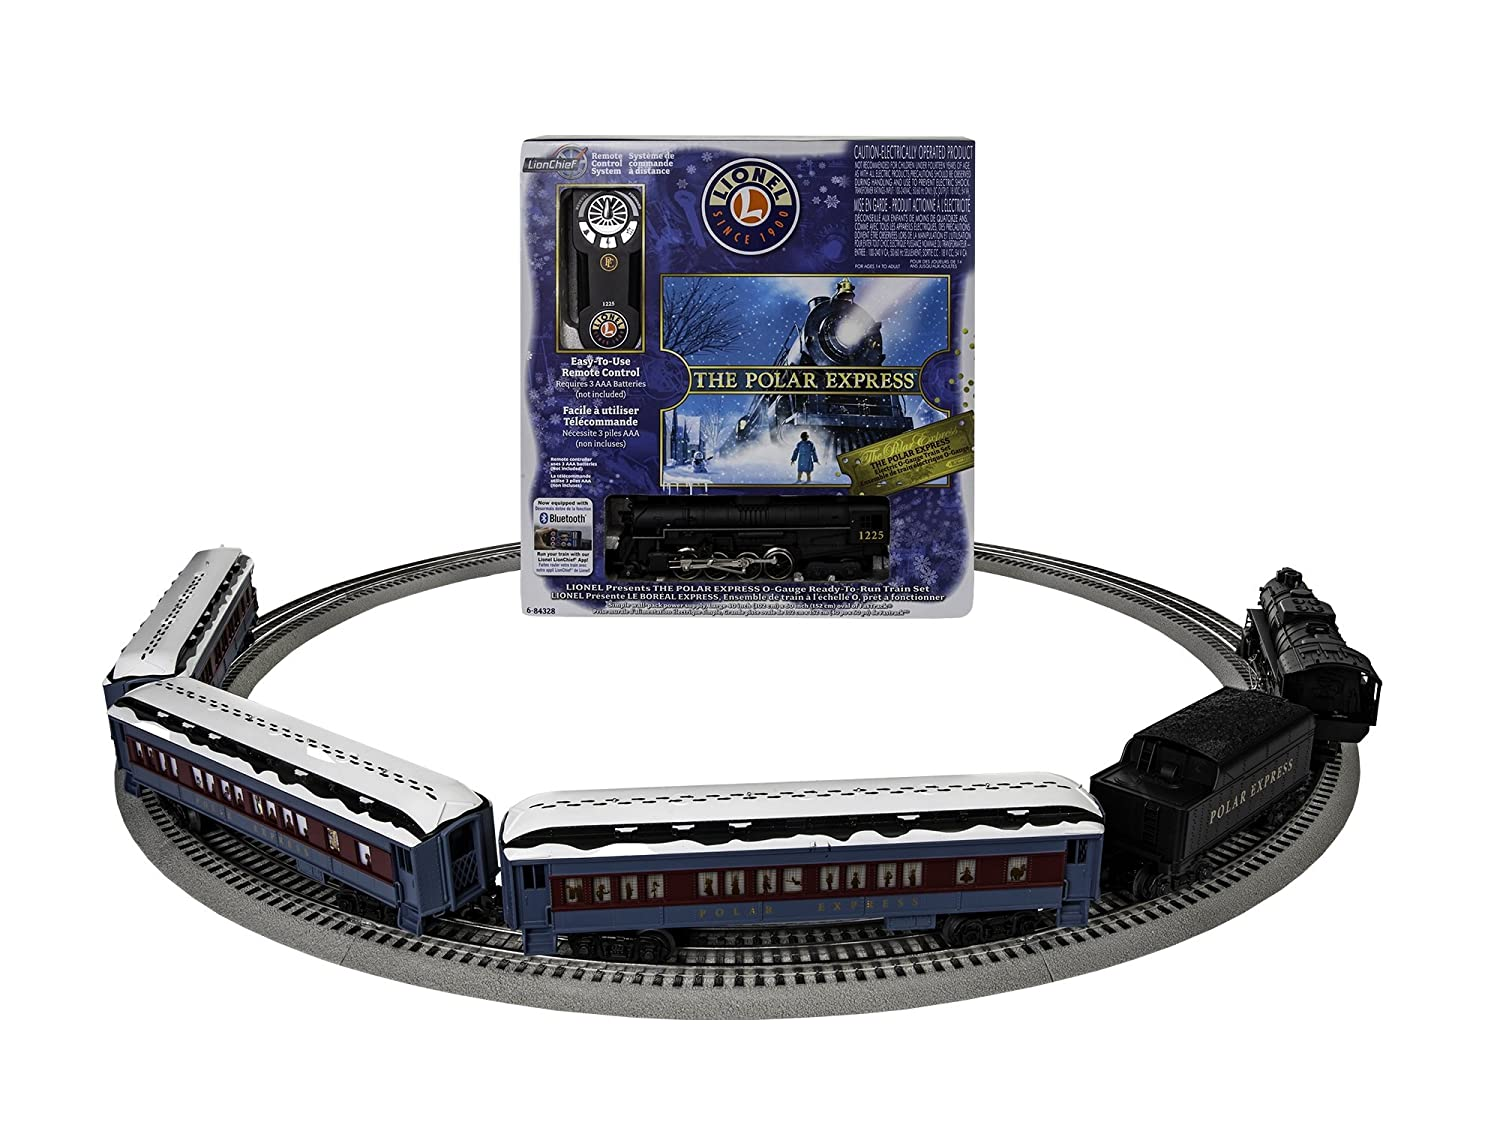 Lionel The Polar Express Lionchief Train Set With 022 Pair Of Ogauge Remote Controlled Switches Complete Bluetooth Toys Games